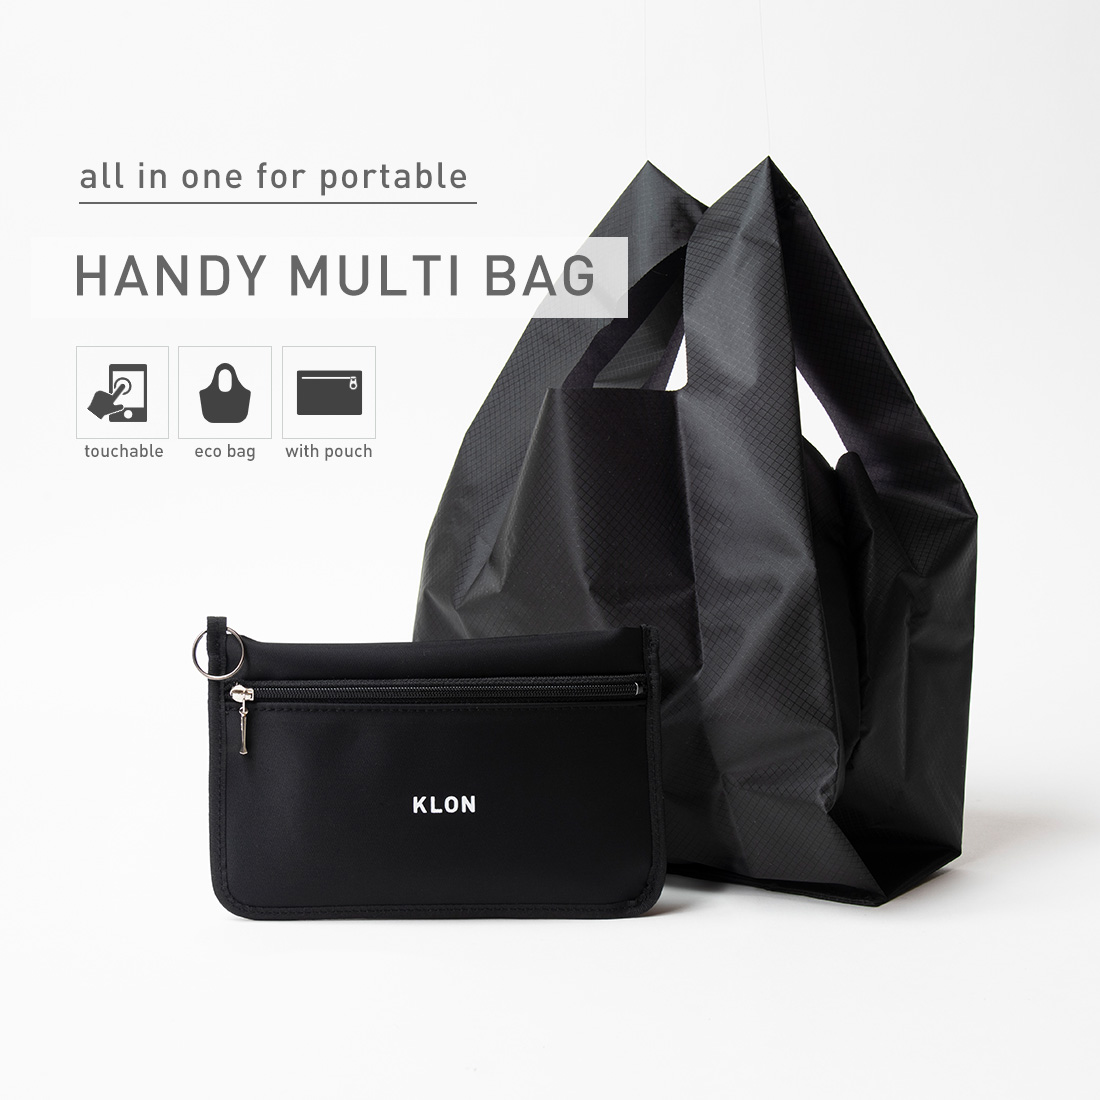 HANDY MULTI BAG